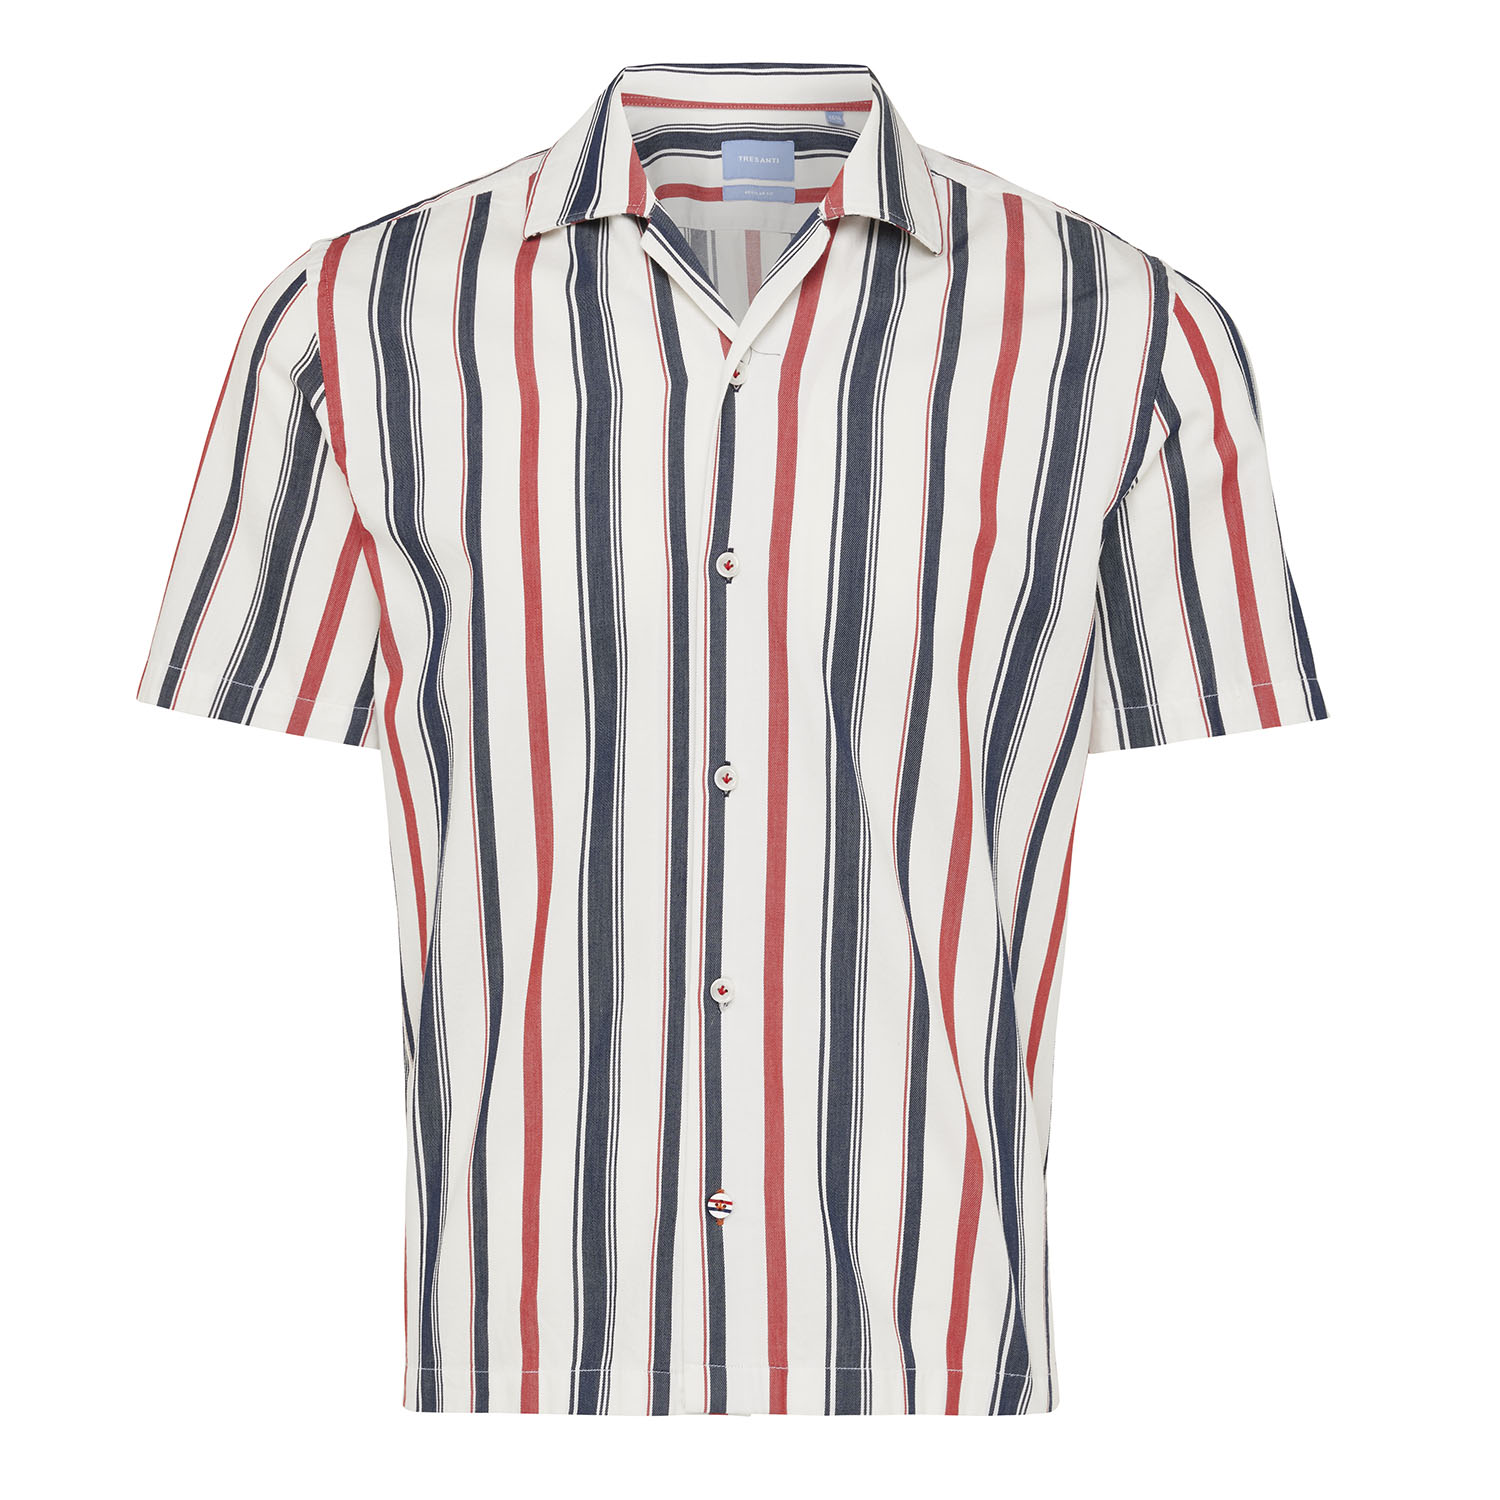 Marley | Shirt multi stripe red/navy short sleeve